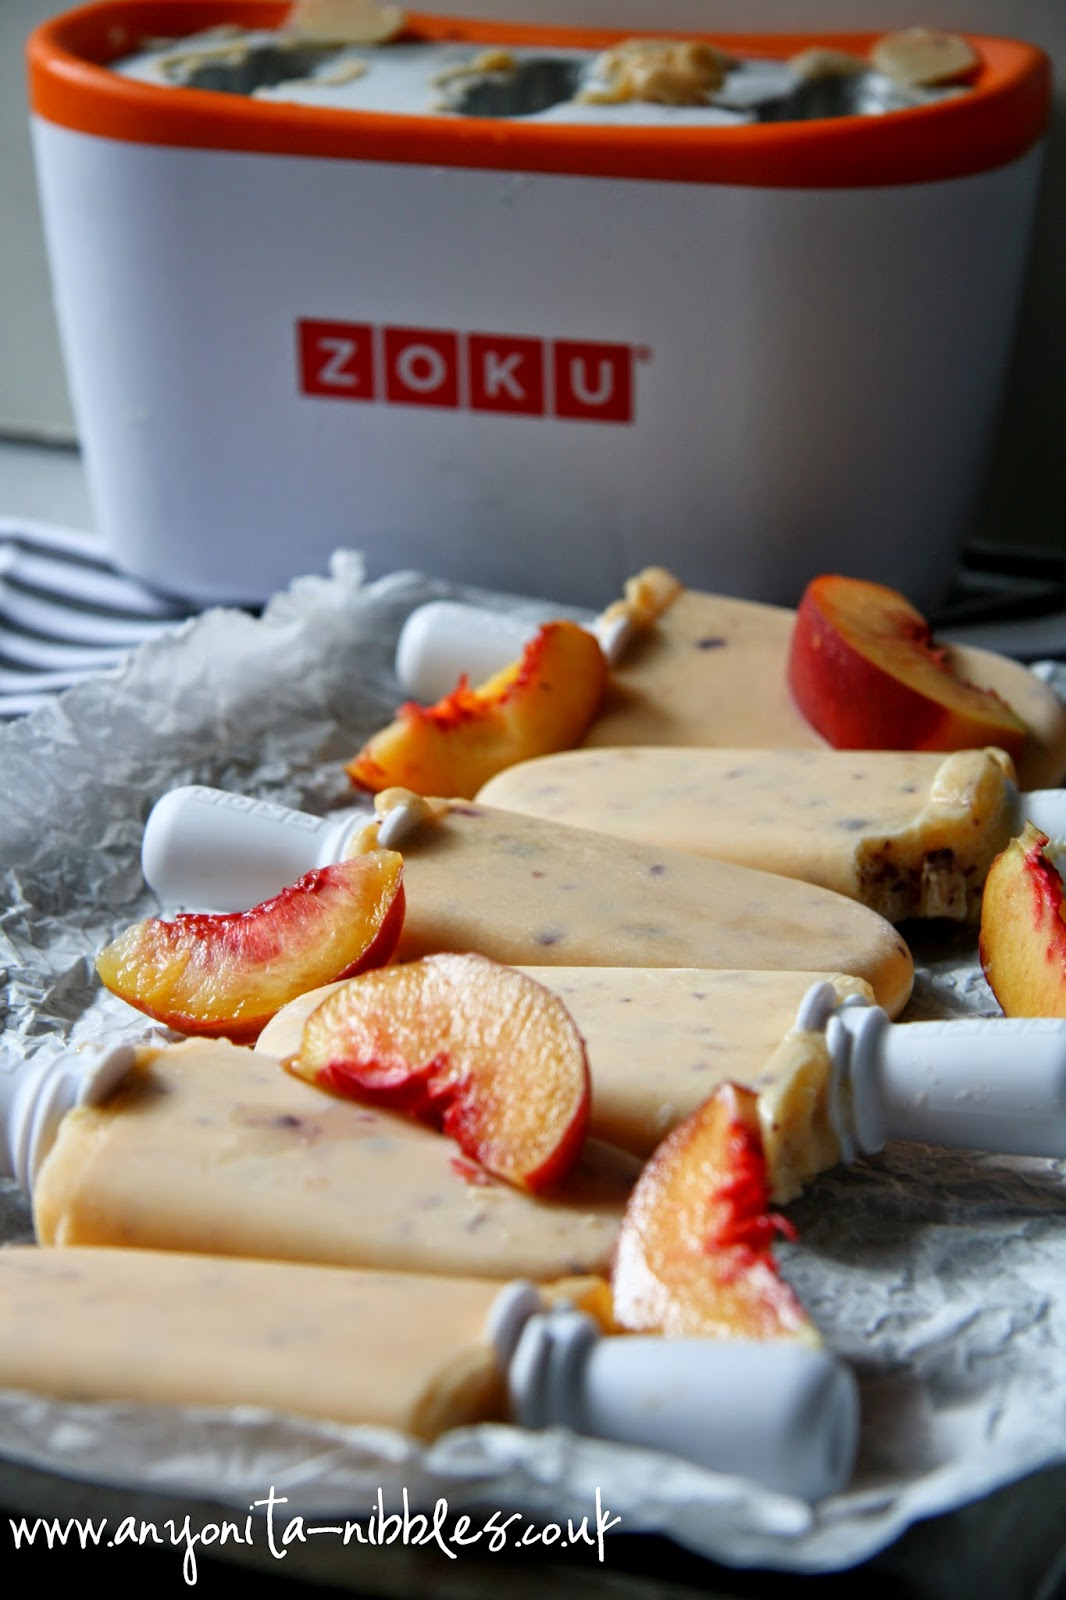 #zoku made #glutenfree #noaddedsugar ice pops from www.anyonita-nibbles.co.uk